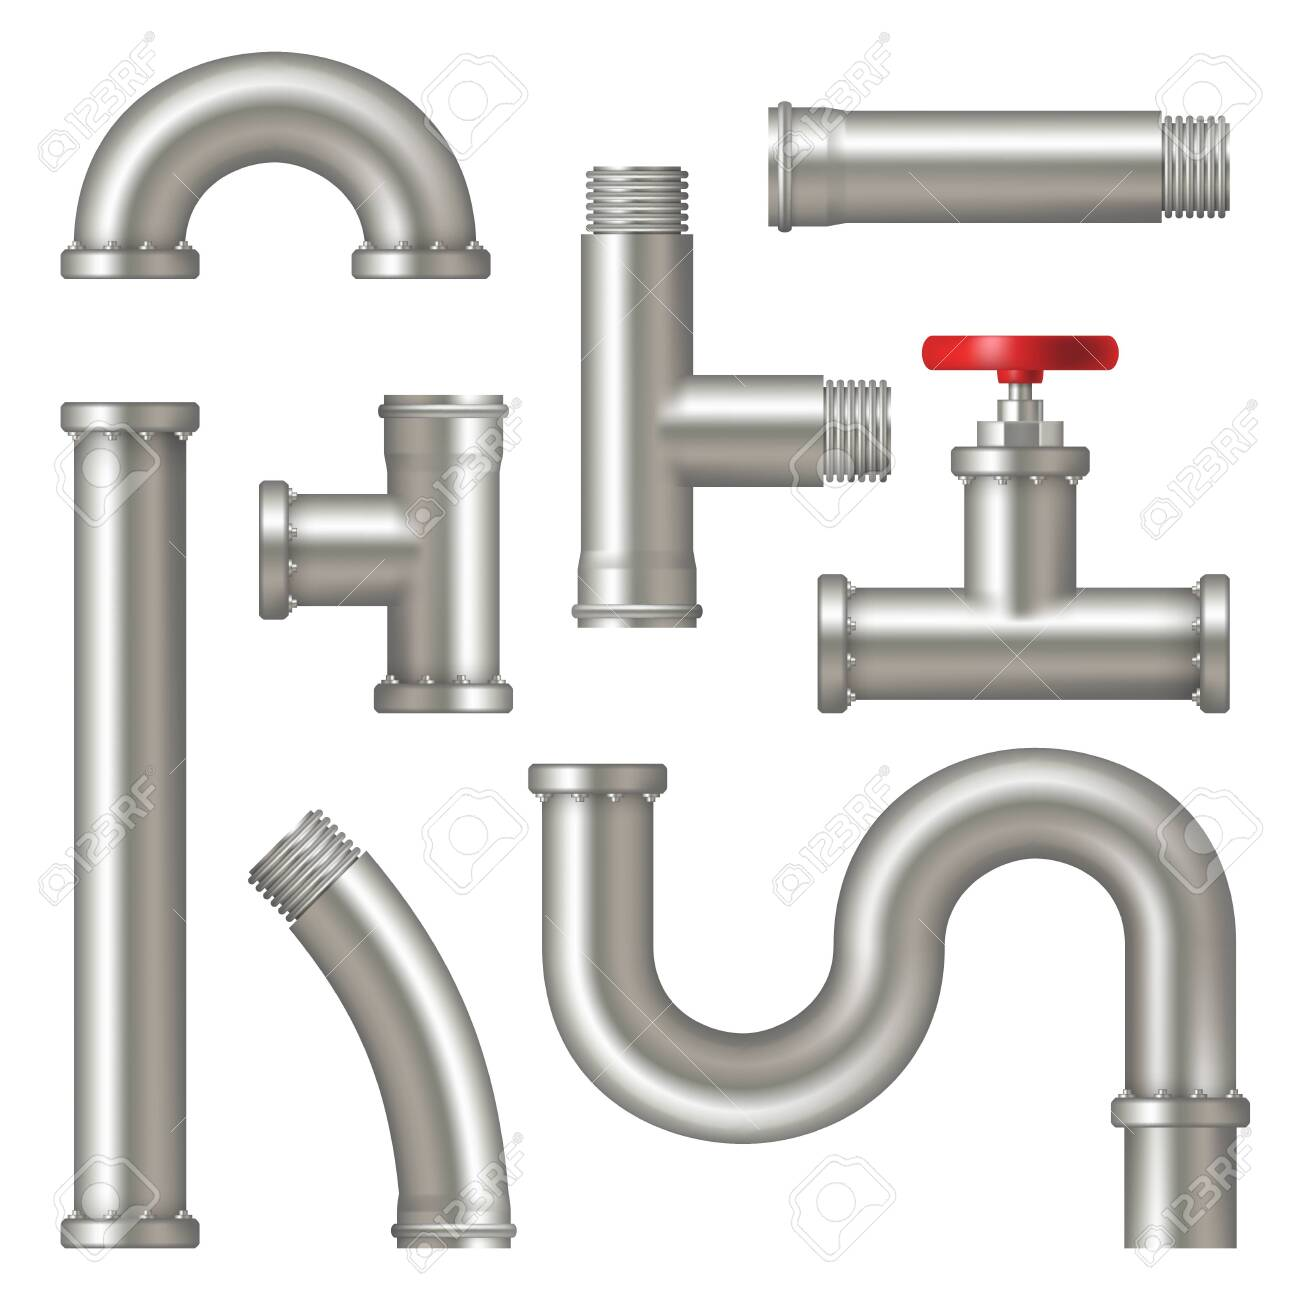 Steel pipes. Realistic picture of water tubes systems with cranes curved factory oil or gas pipelines vector set. Pipe metal steel, pipeline plumbing illustration - 153302579